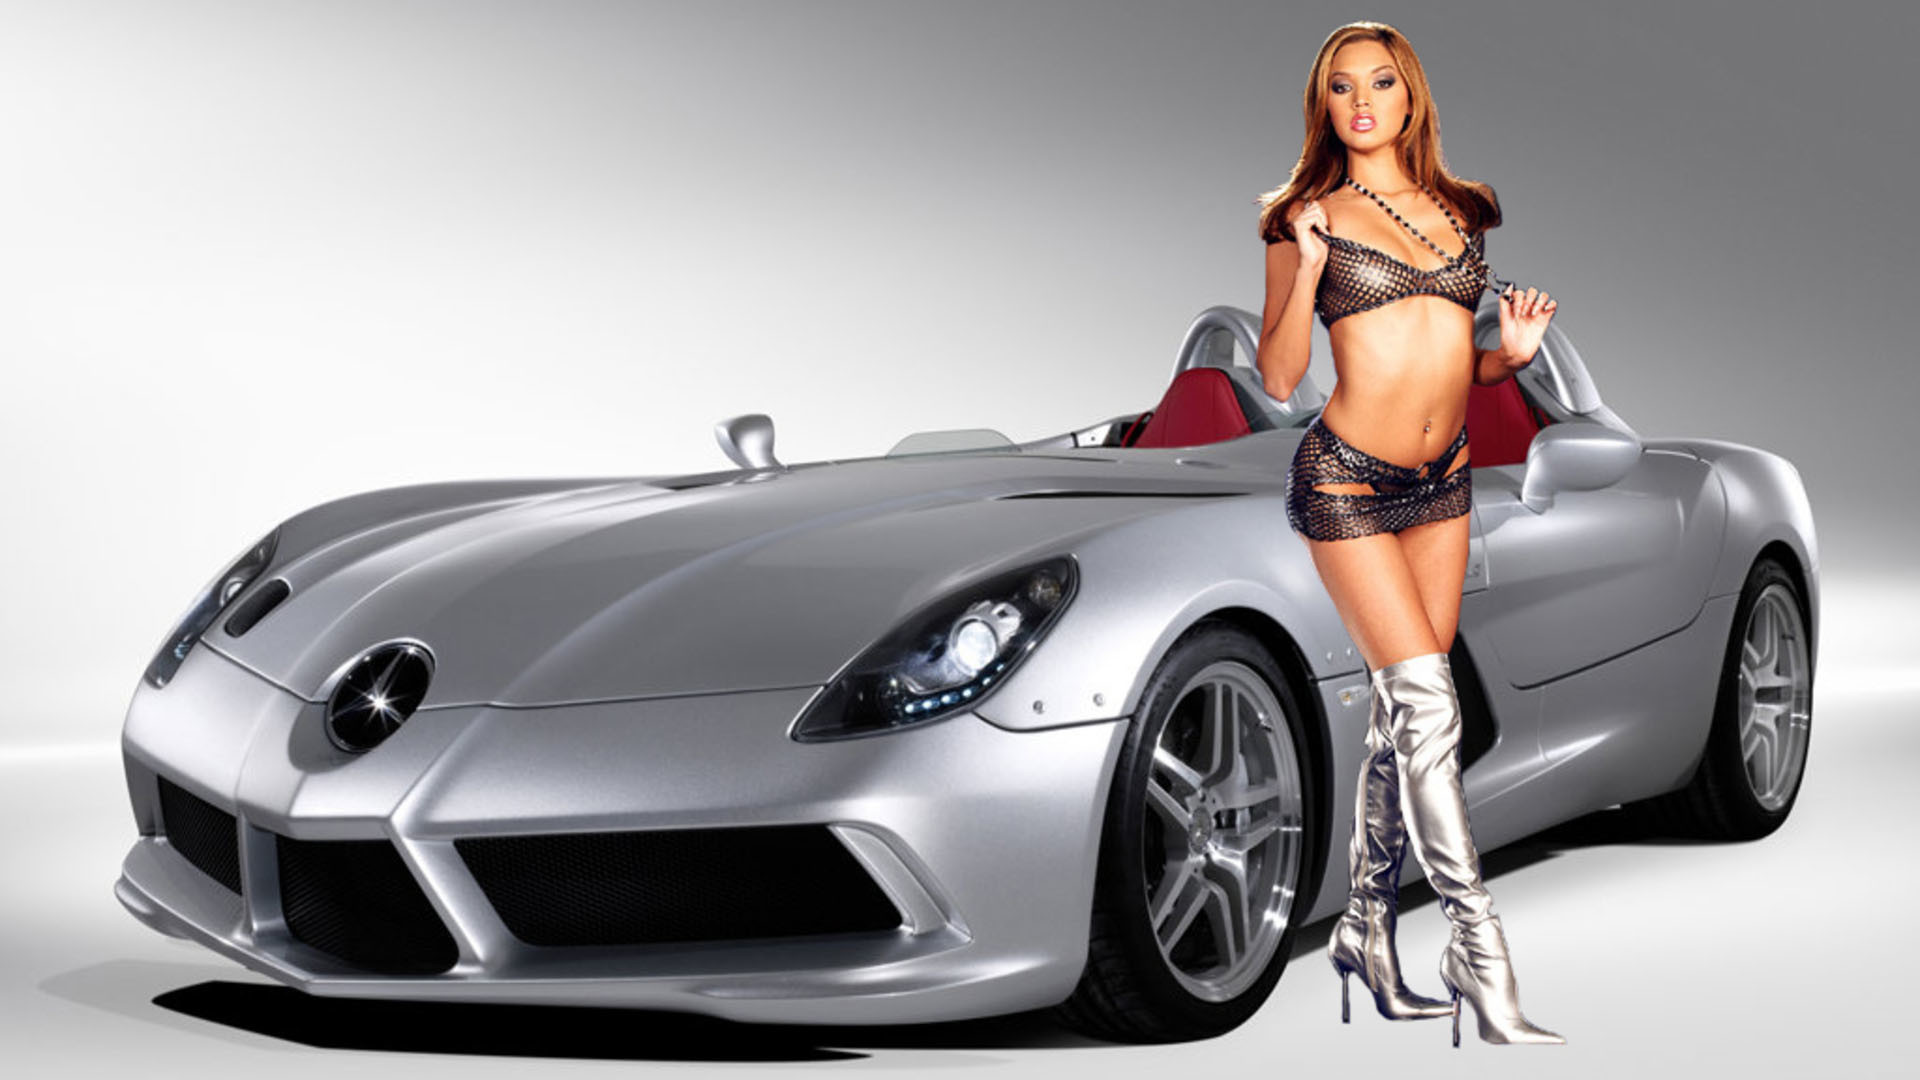 Wallpaper Girls And Cars